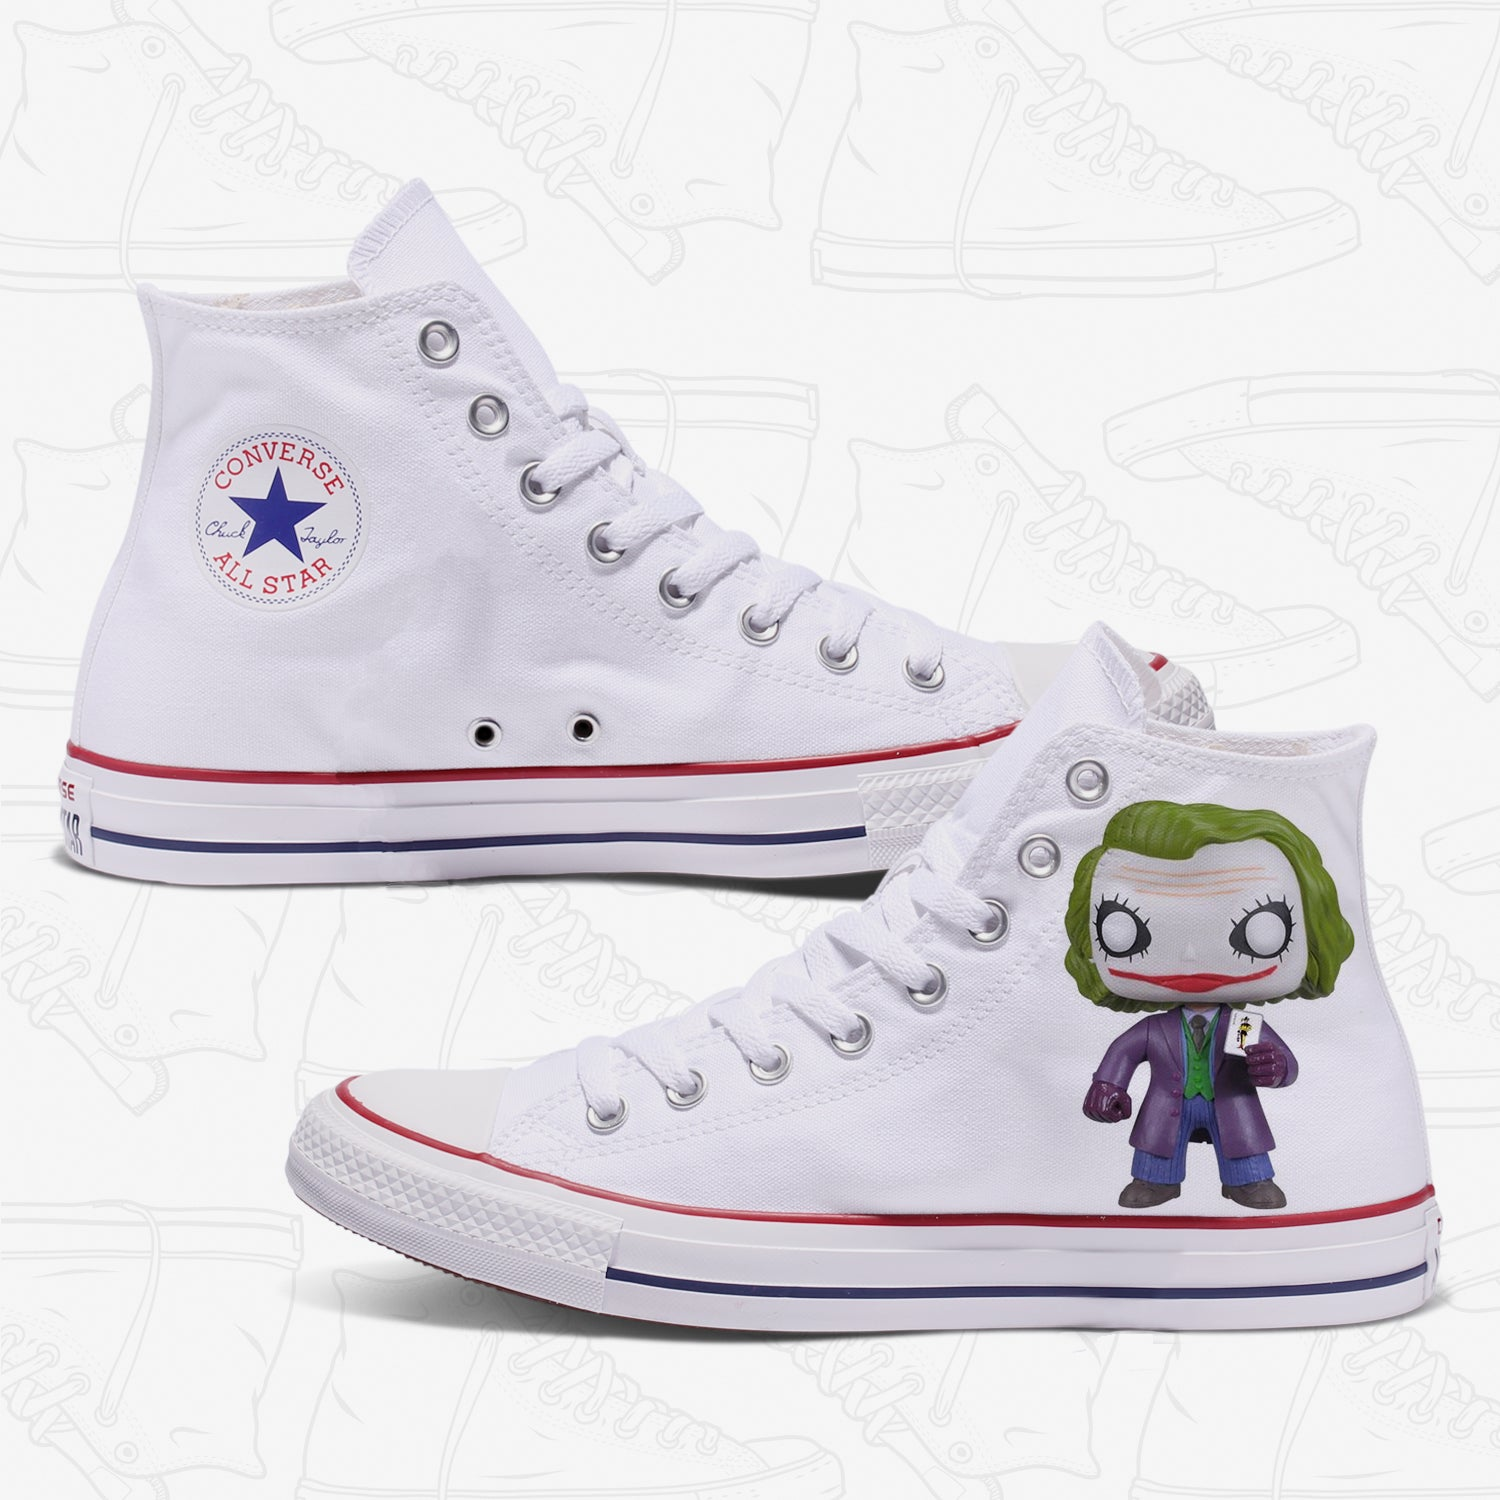 The Joker Custom Converse White